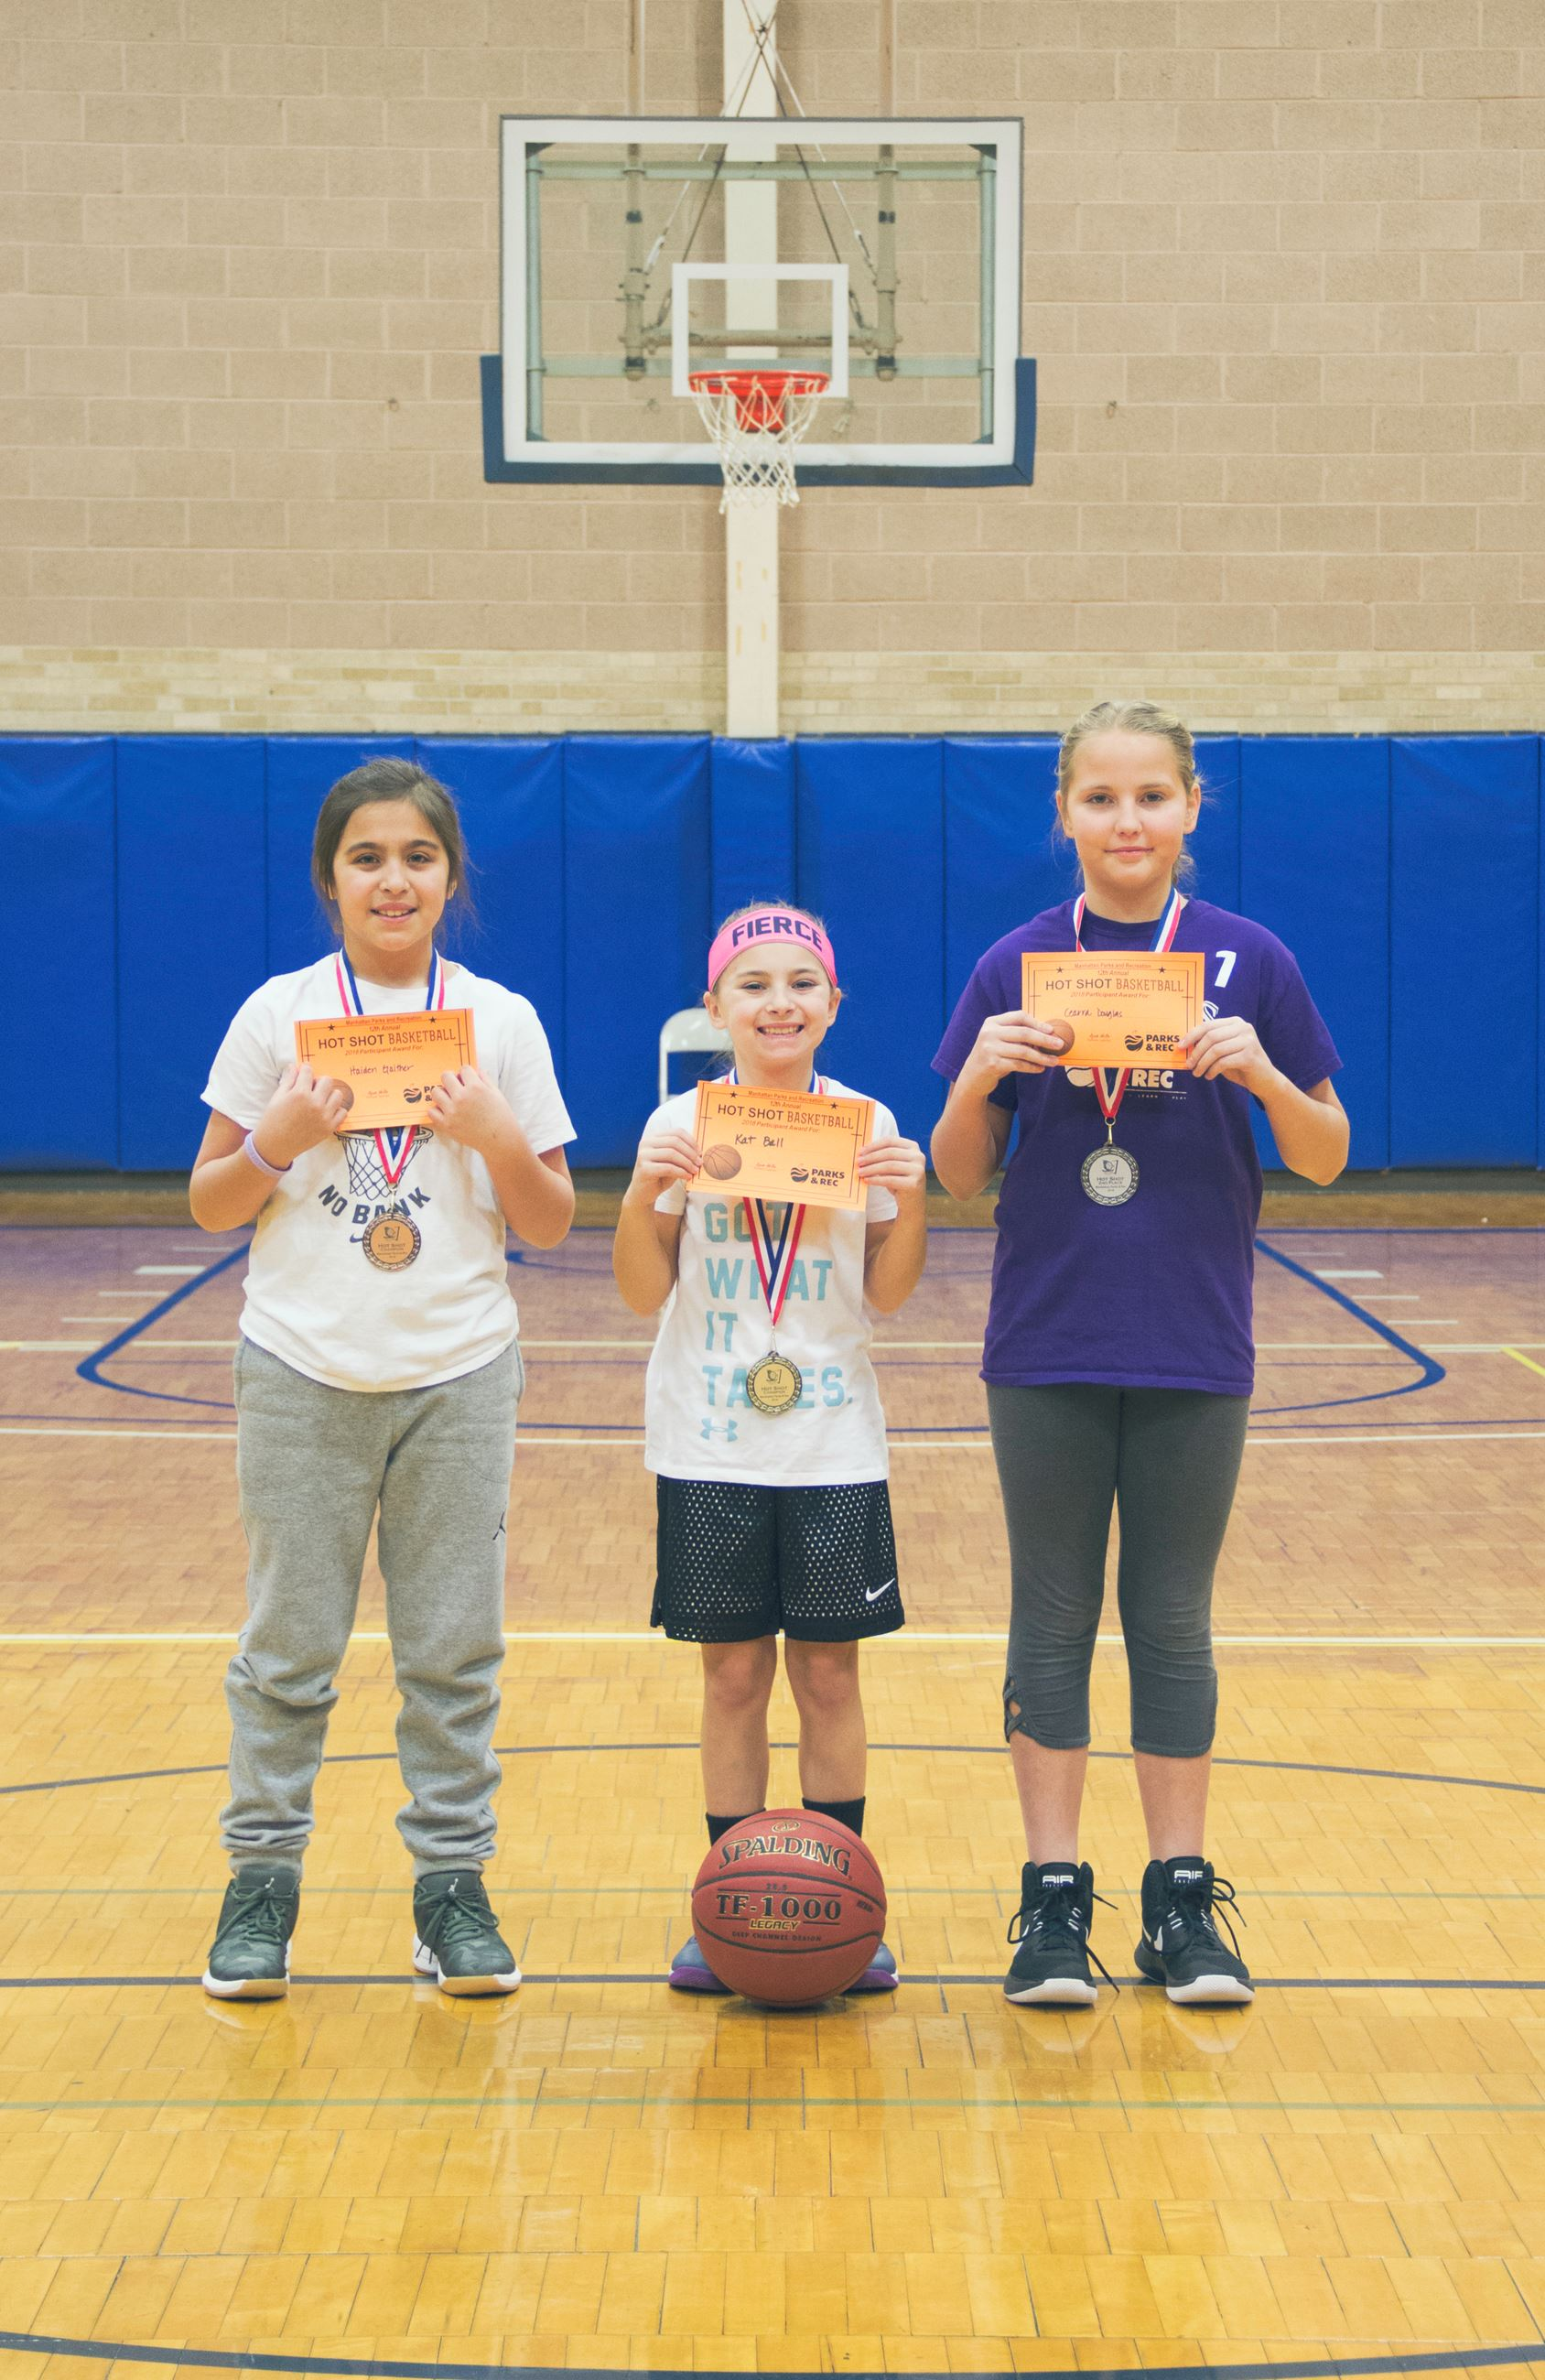 Hot Shot winners Girls 3rd-6th